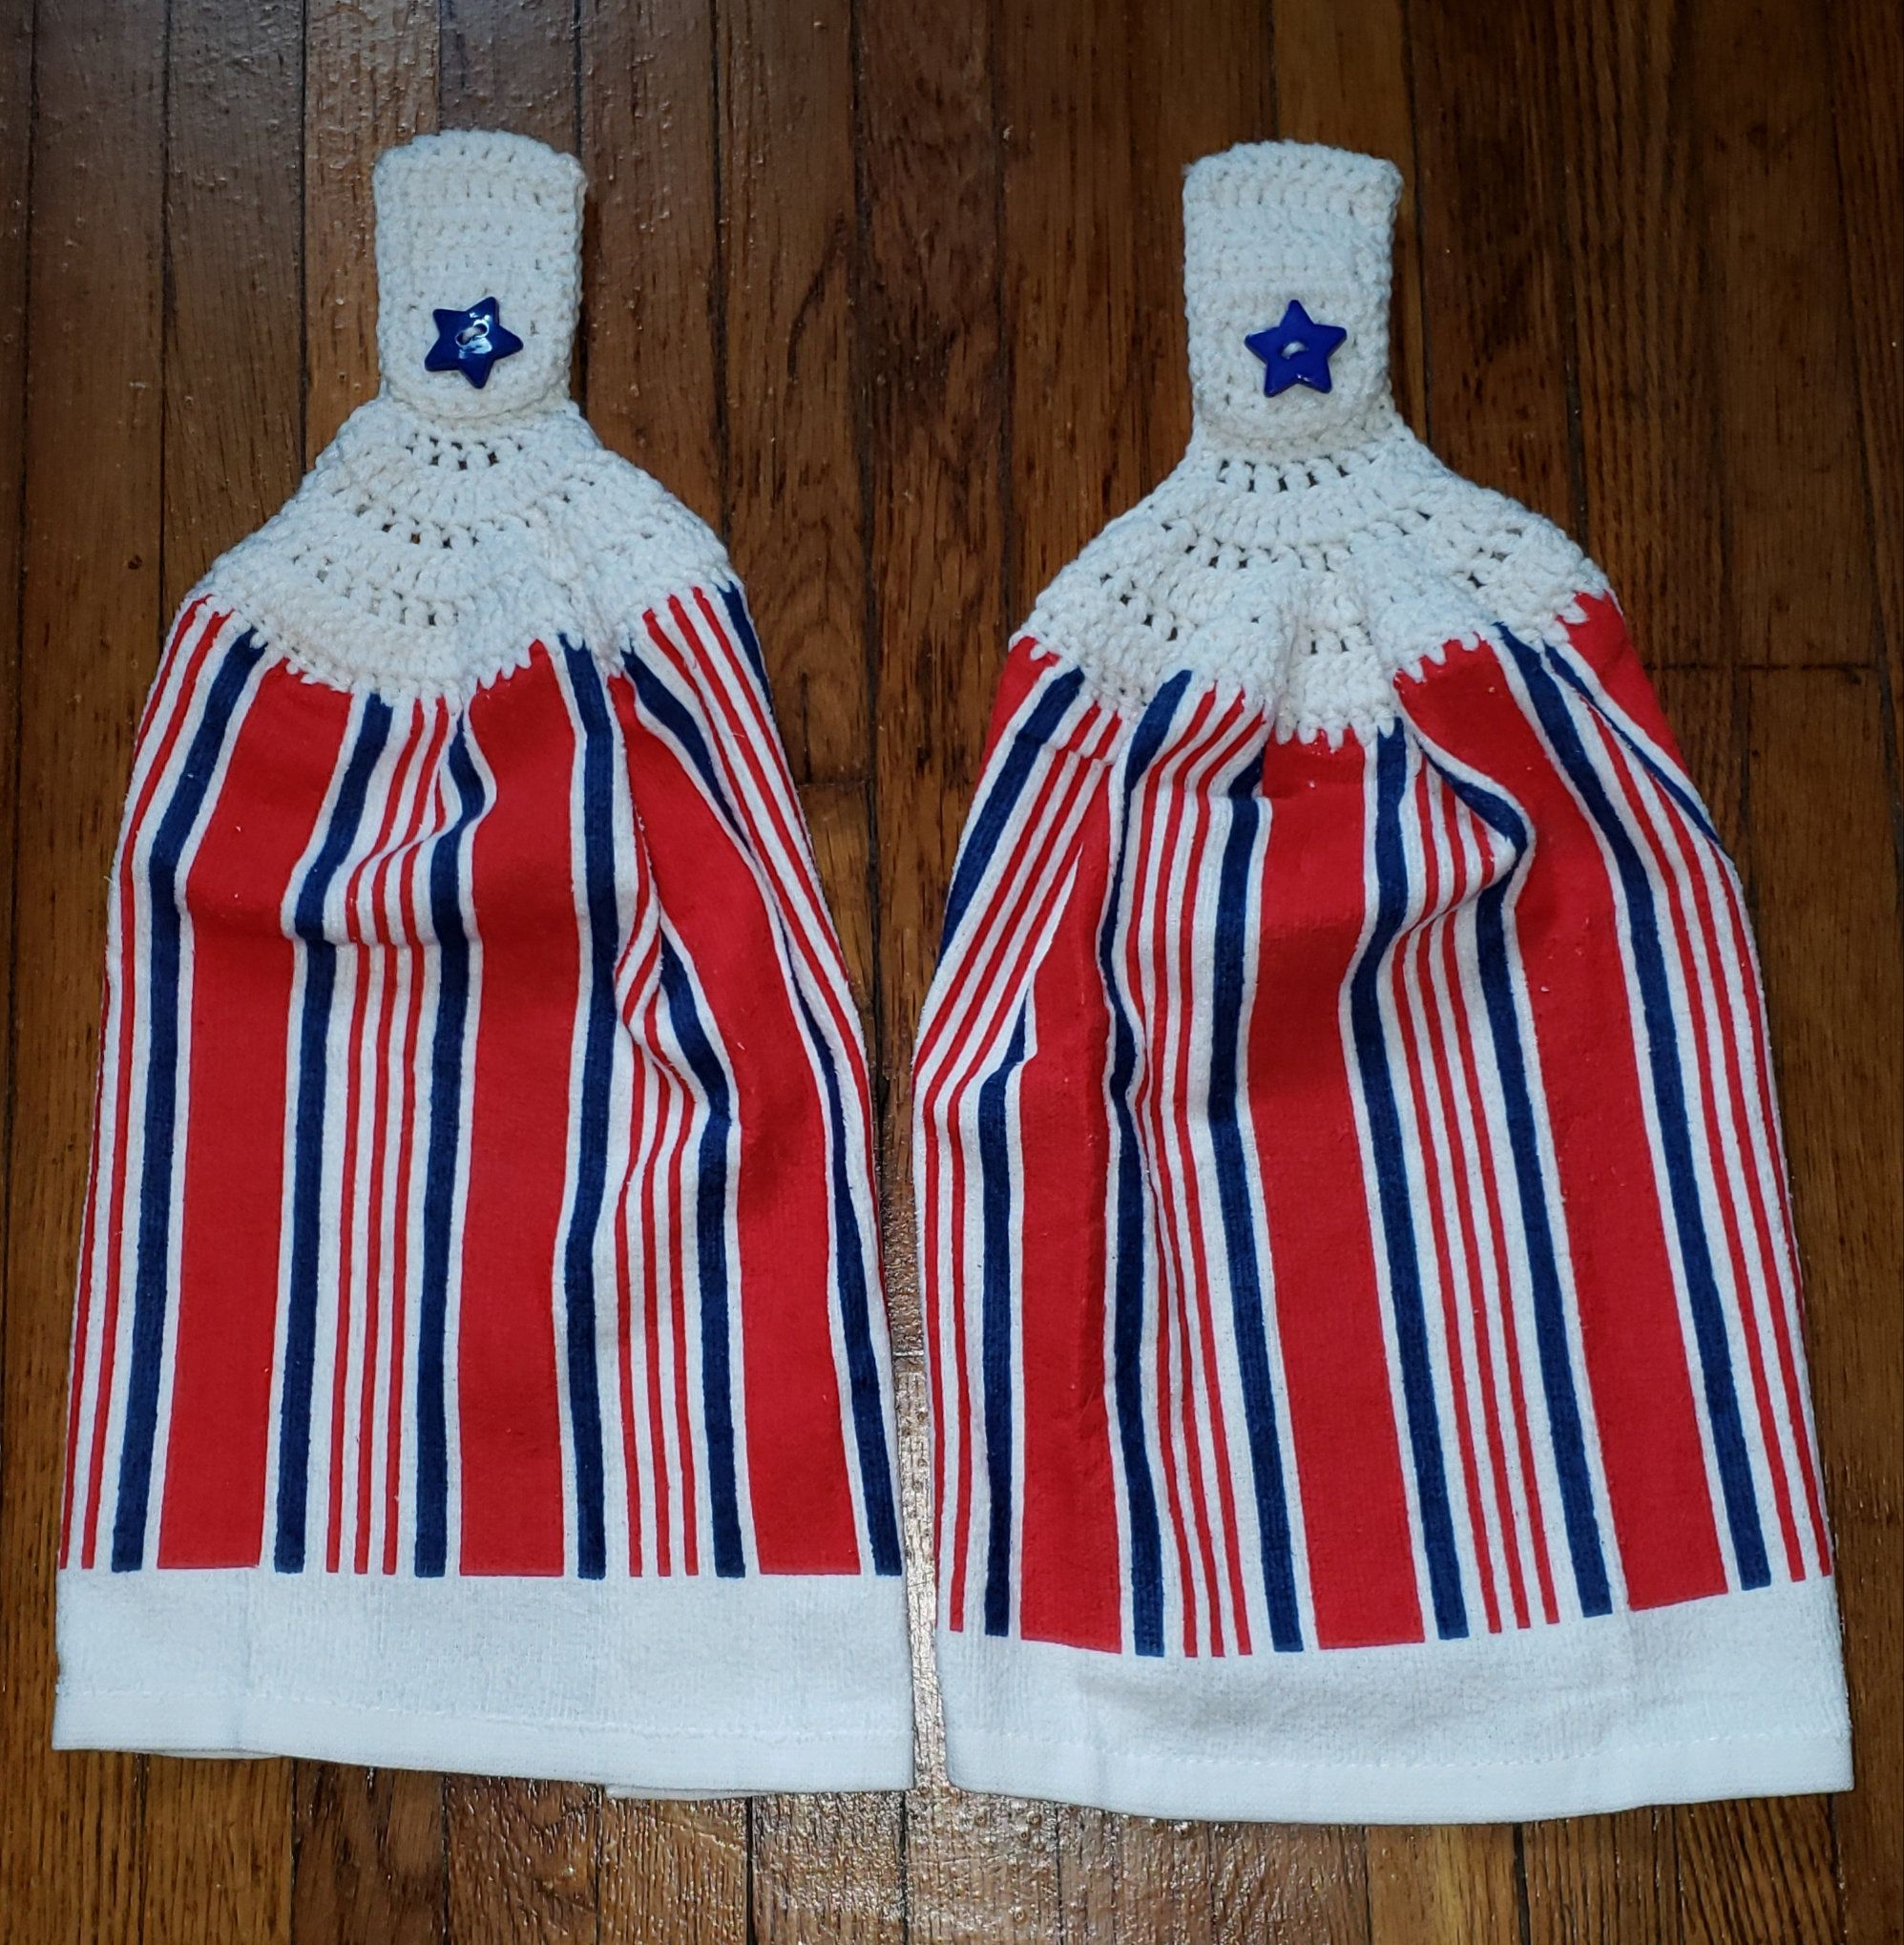 Download Wallpaper Red White Blue Kitchen Towels